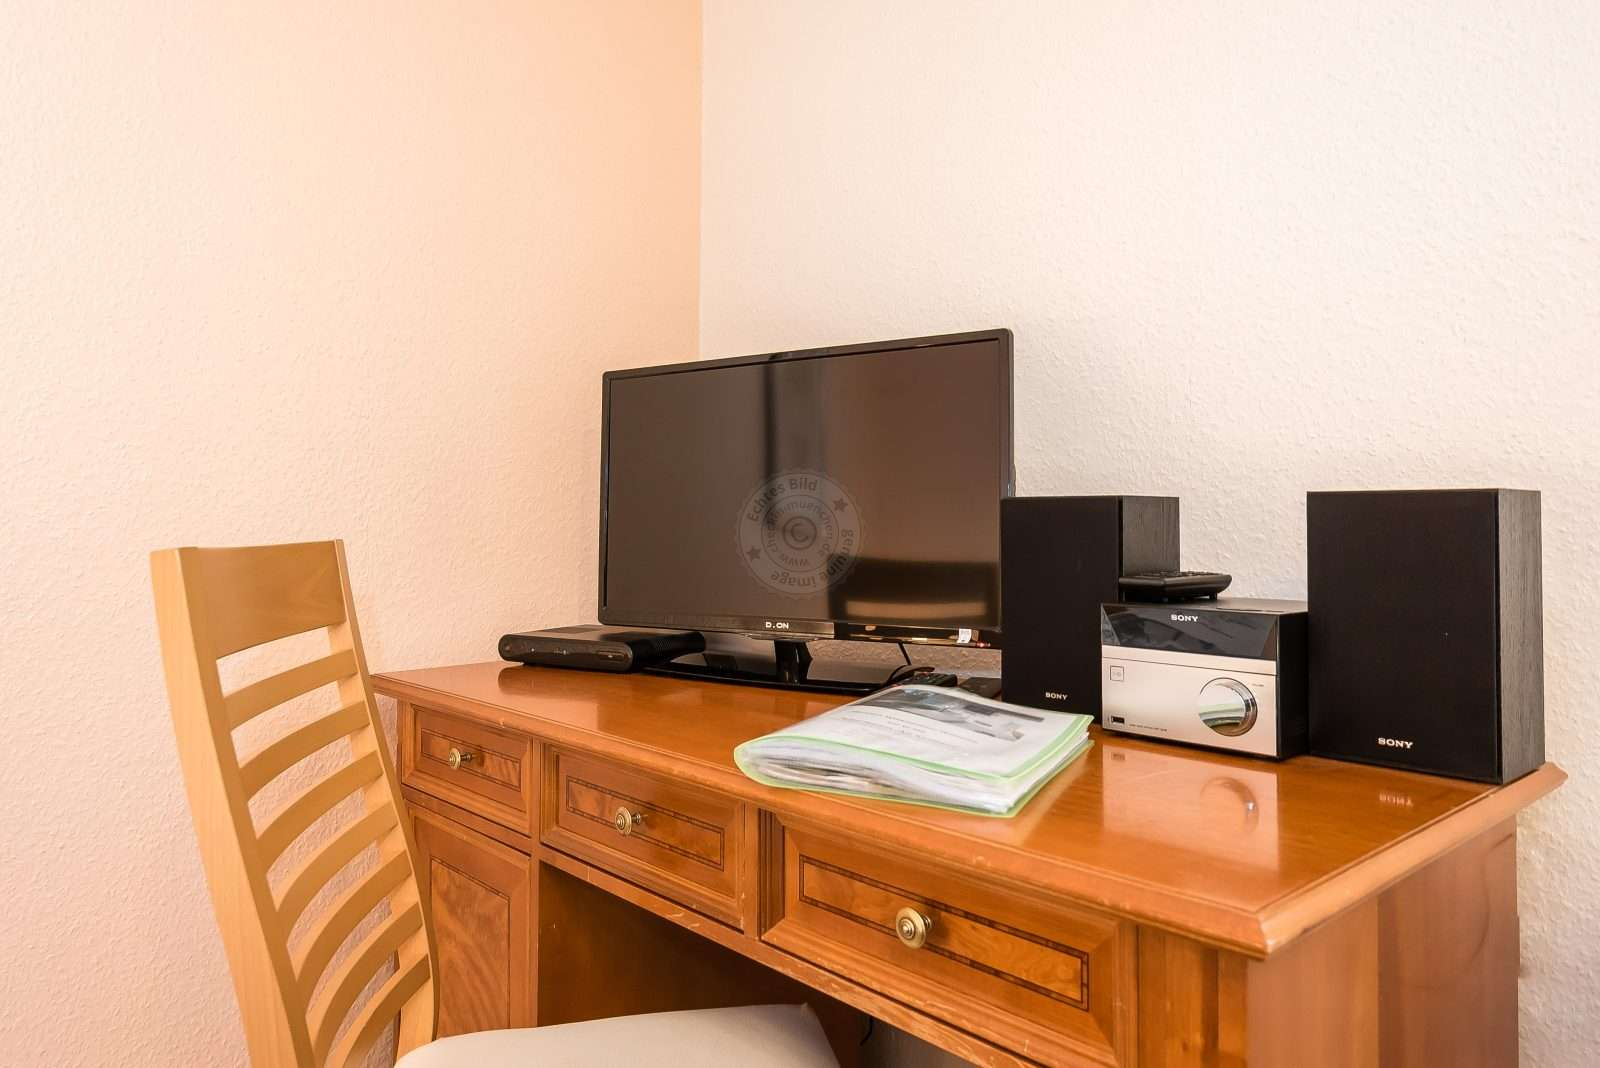 Work desk with smart TV and HiFi